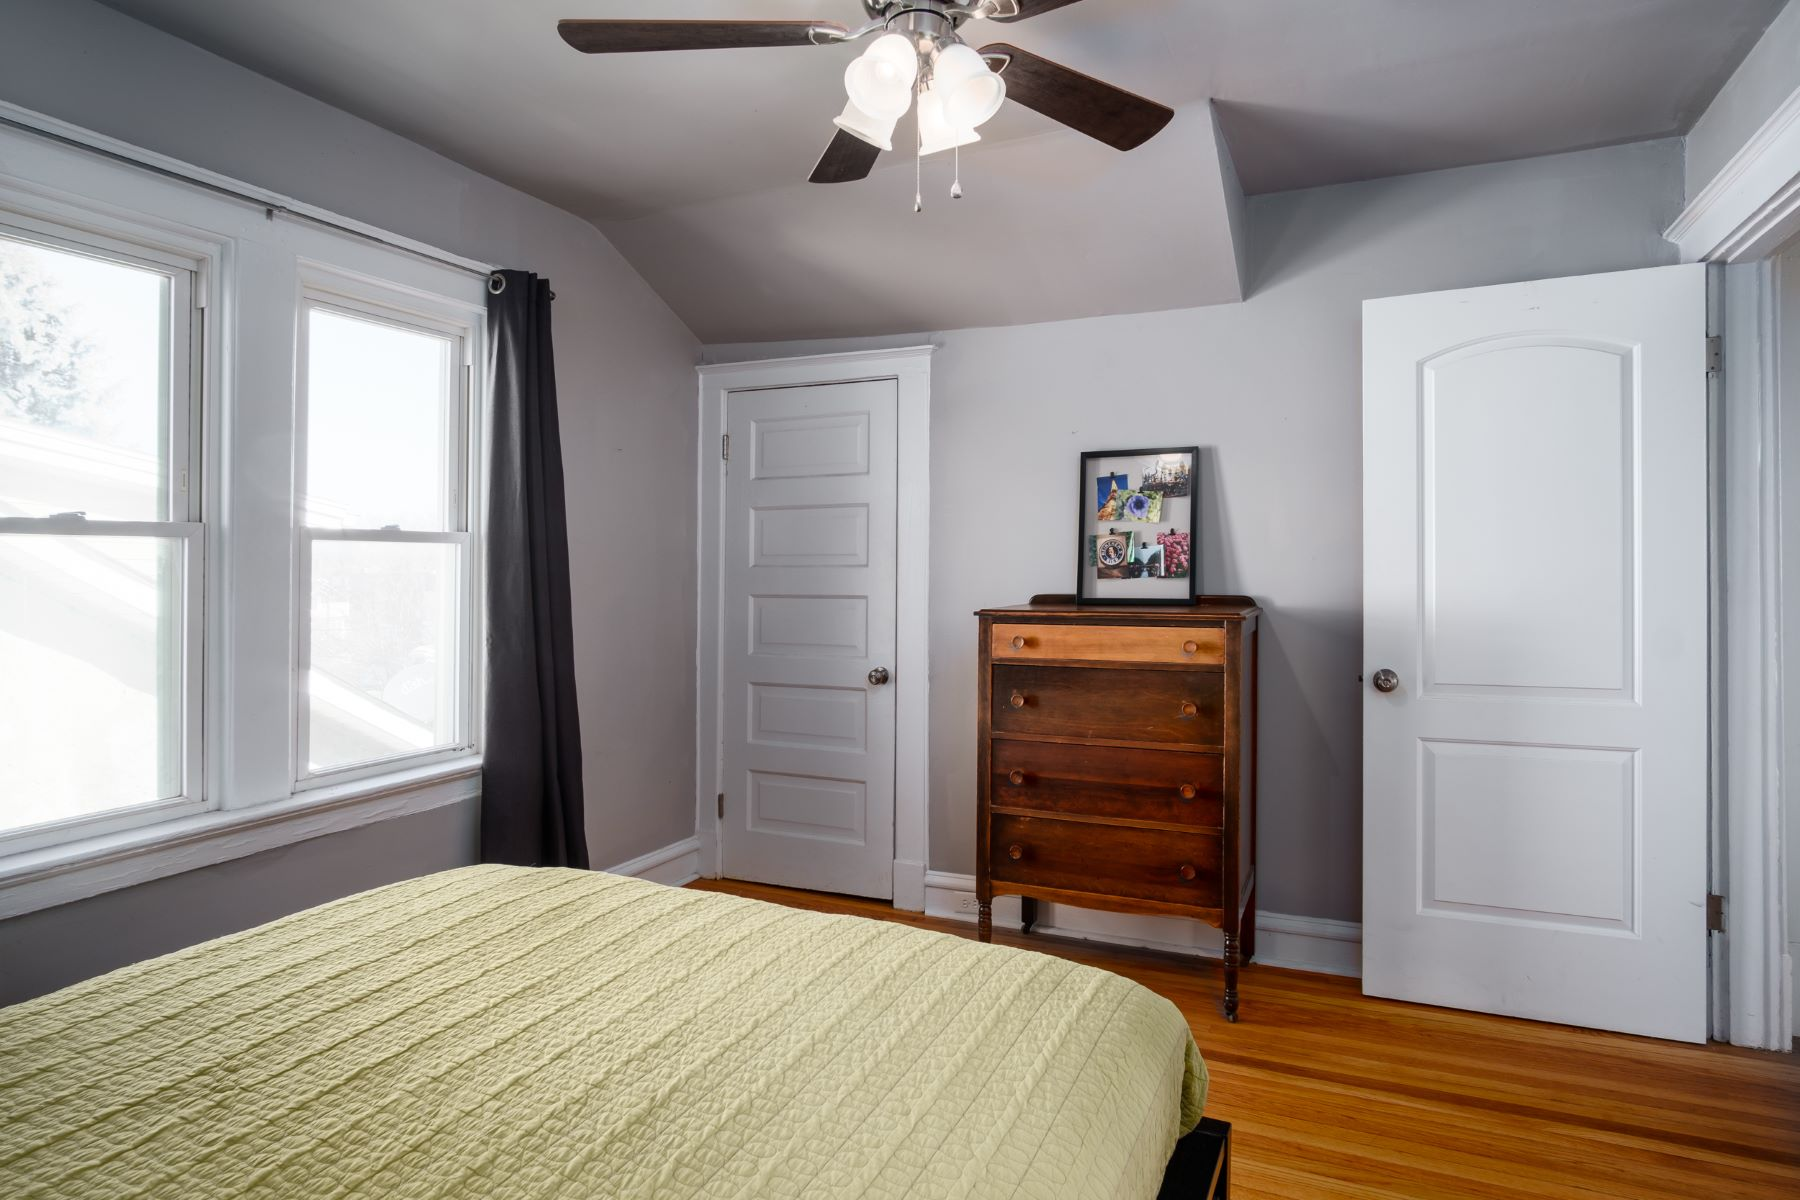 Additional photo for property listing at Charming 2 bed 1 bath in Maplewood 2423 Florent Avenue Maplewood, Missouri 63143 United States